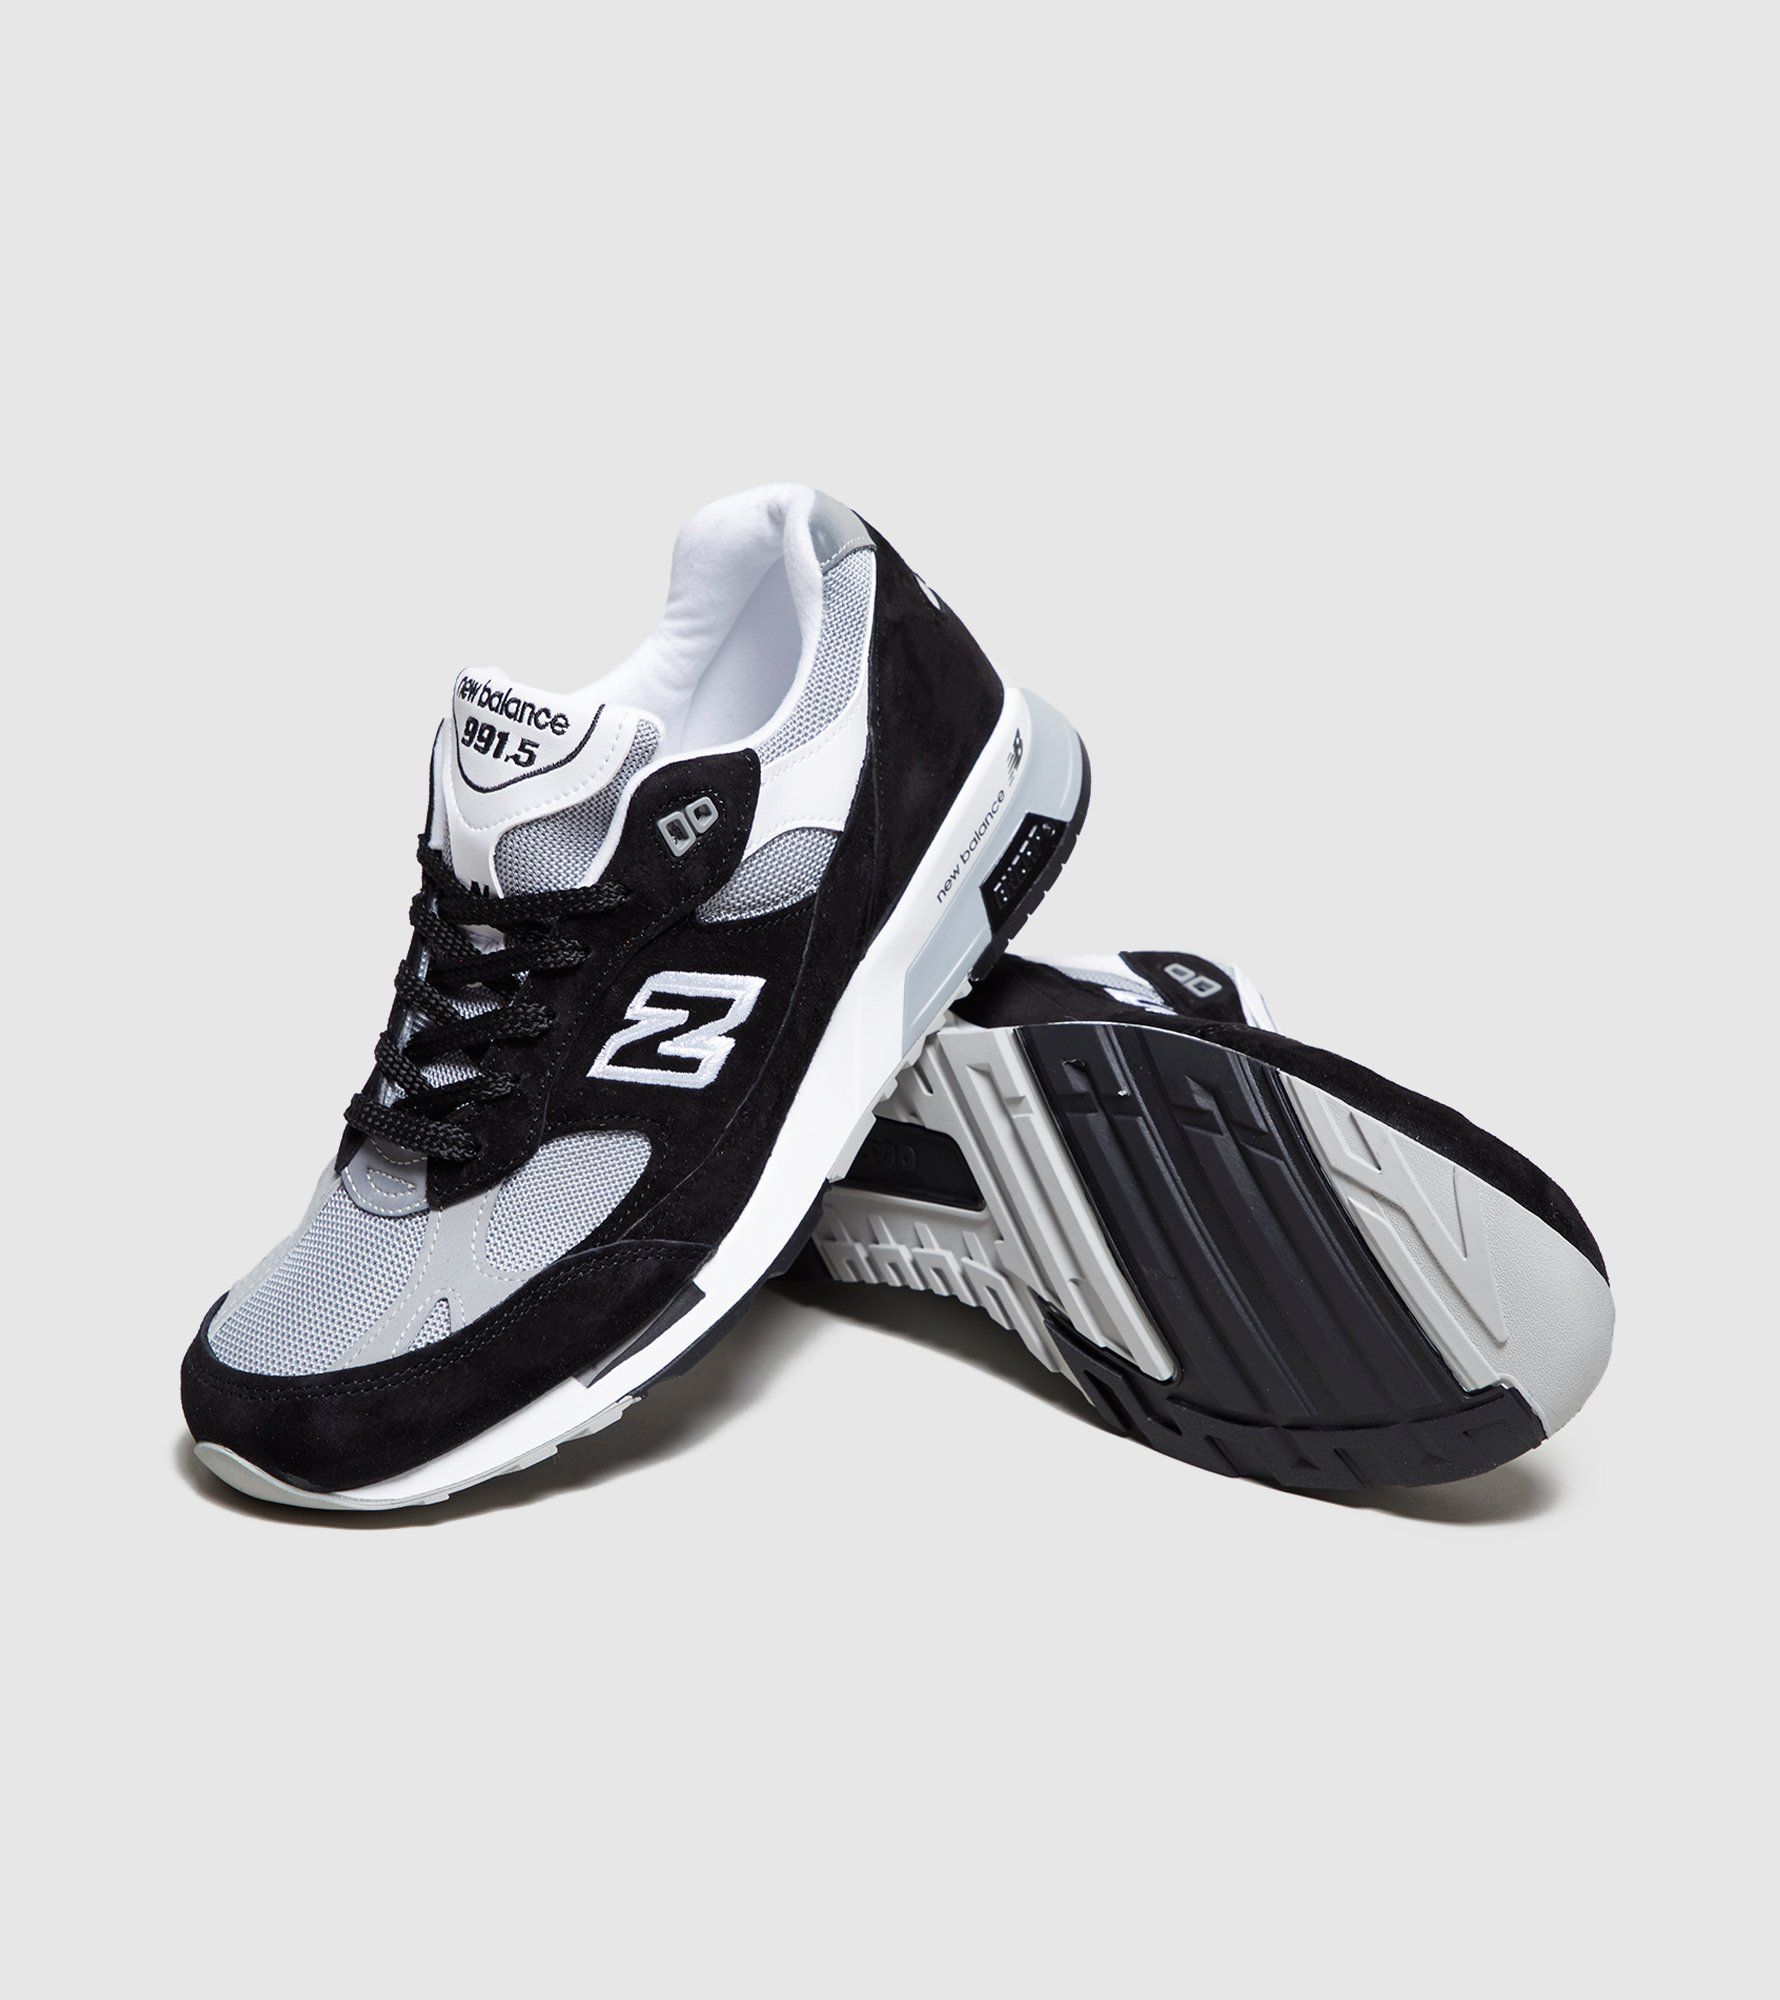 New Balance 991.5 - Made in England